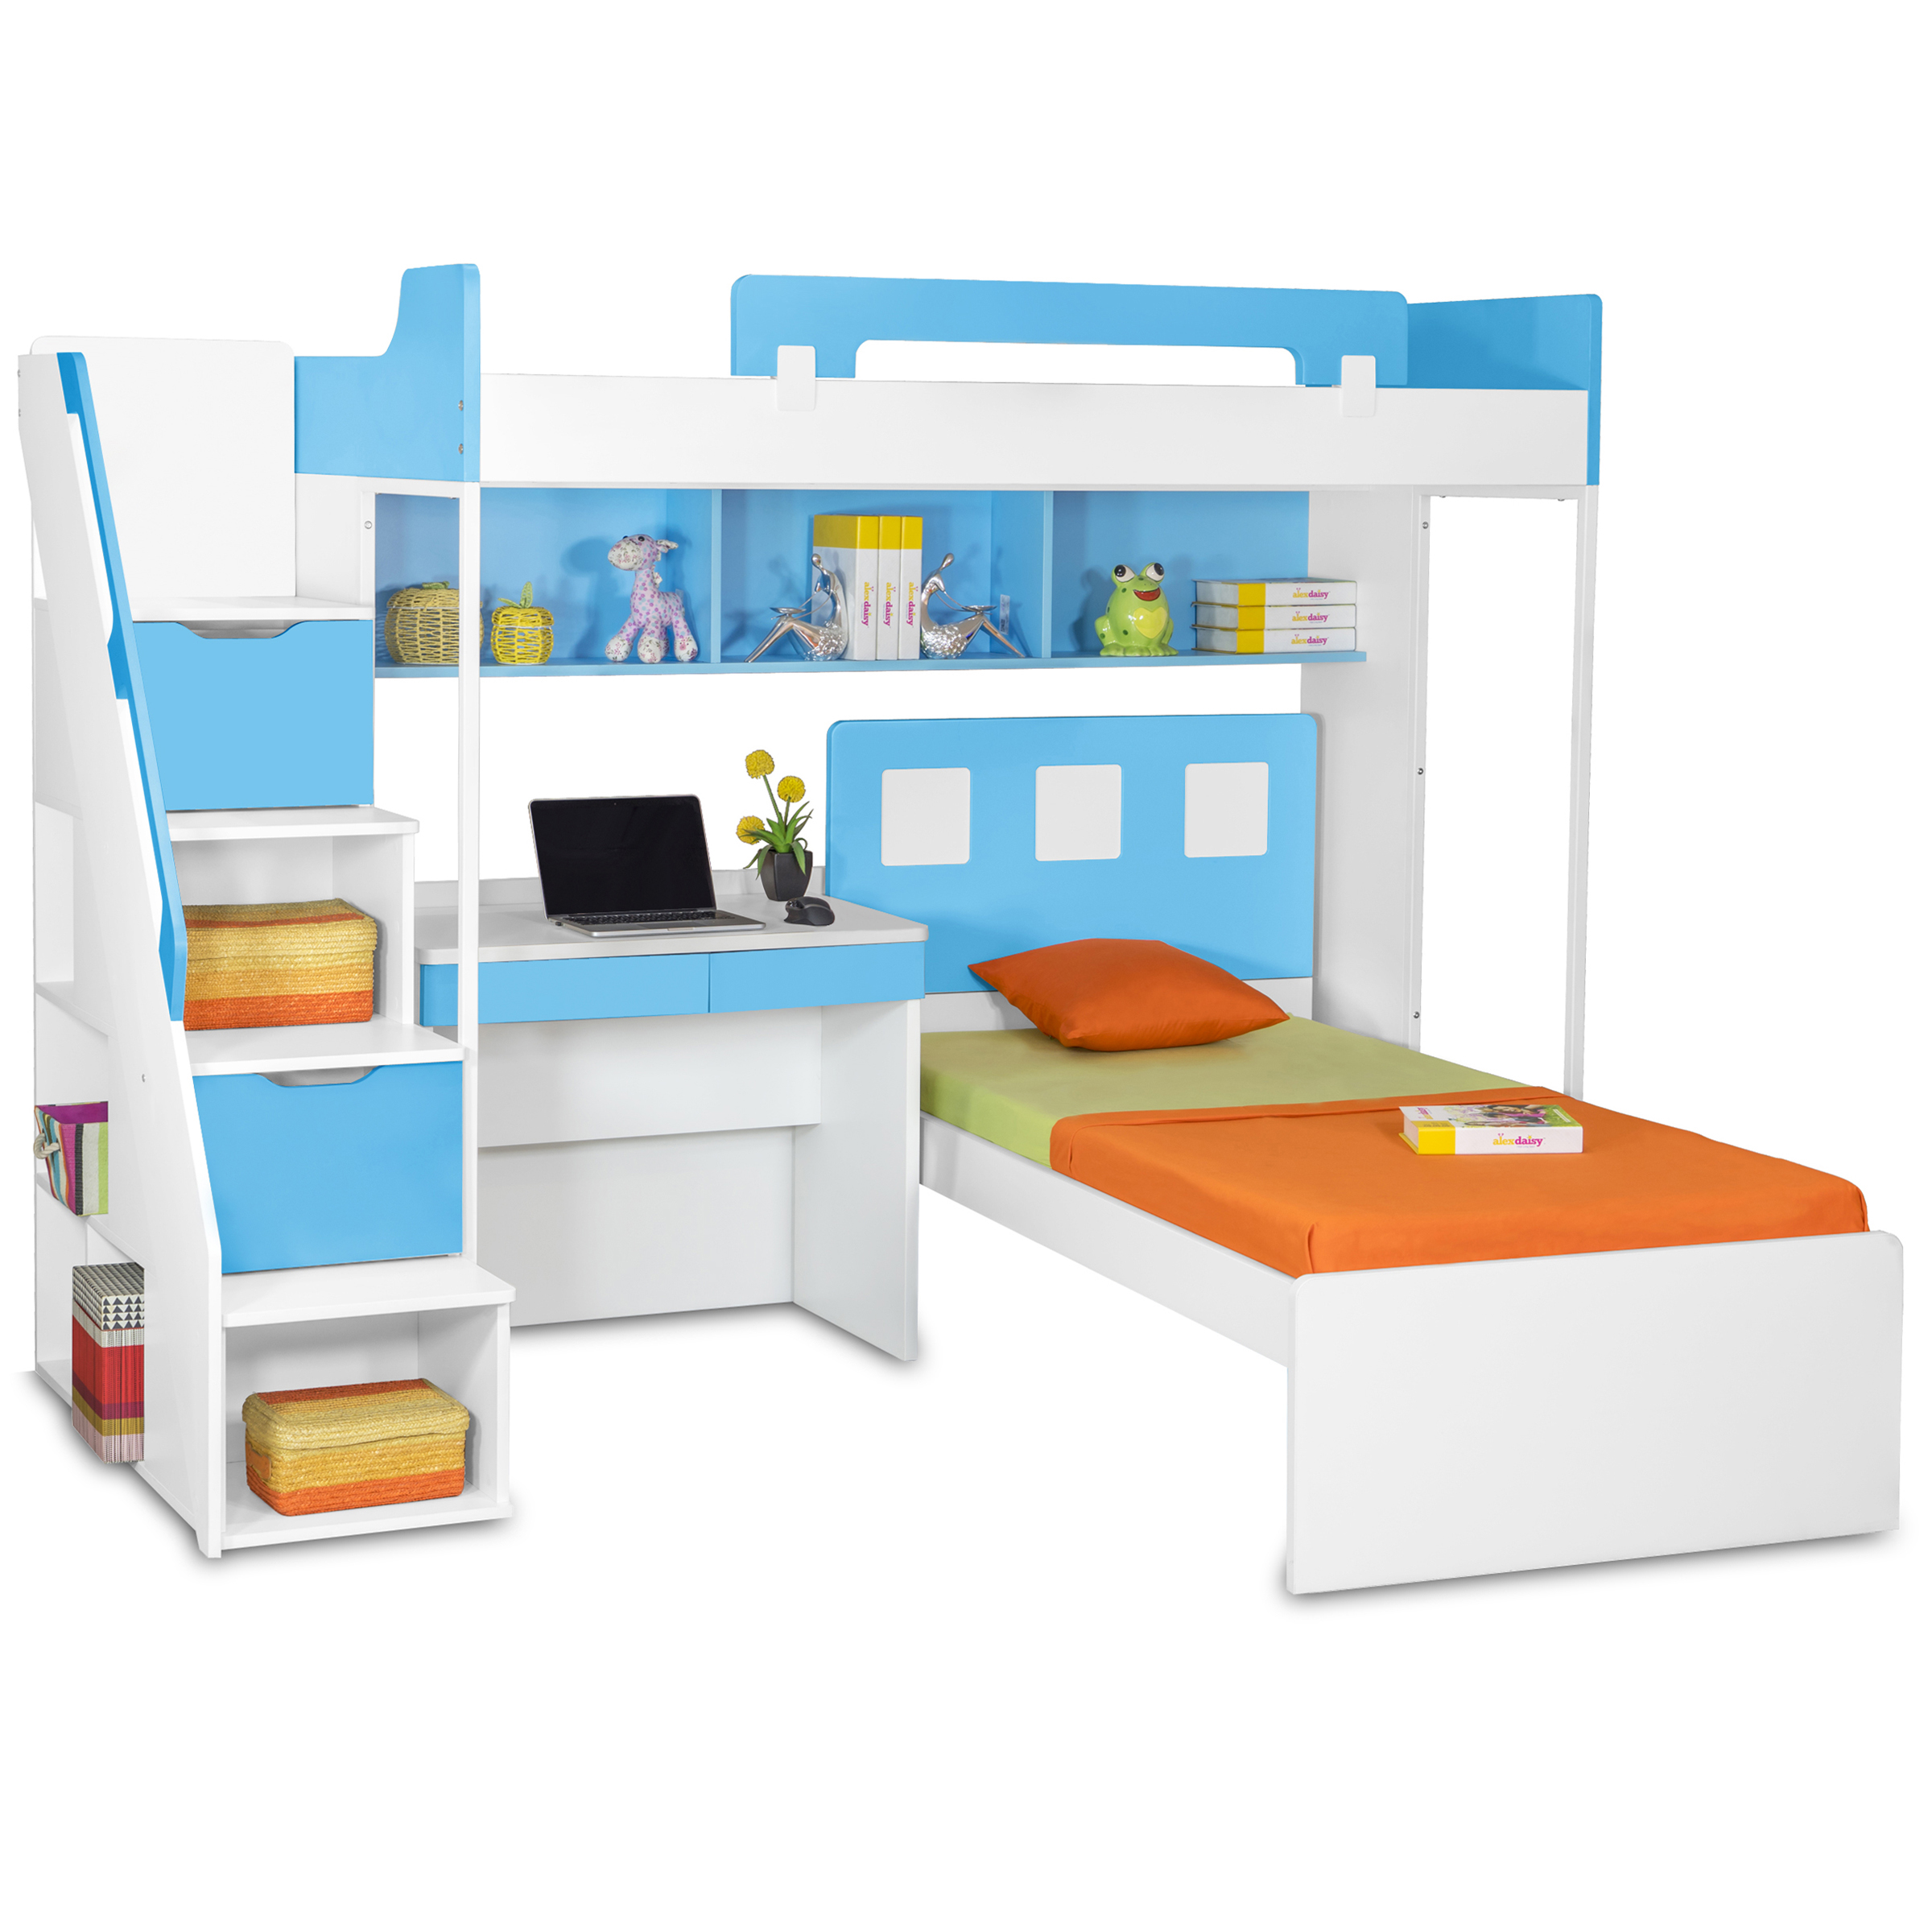 kids bunk beds online shopping india bunk beds for twin toddlers. Black Bedroom Furniture Sets. Home Design Ideas